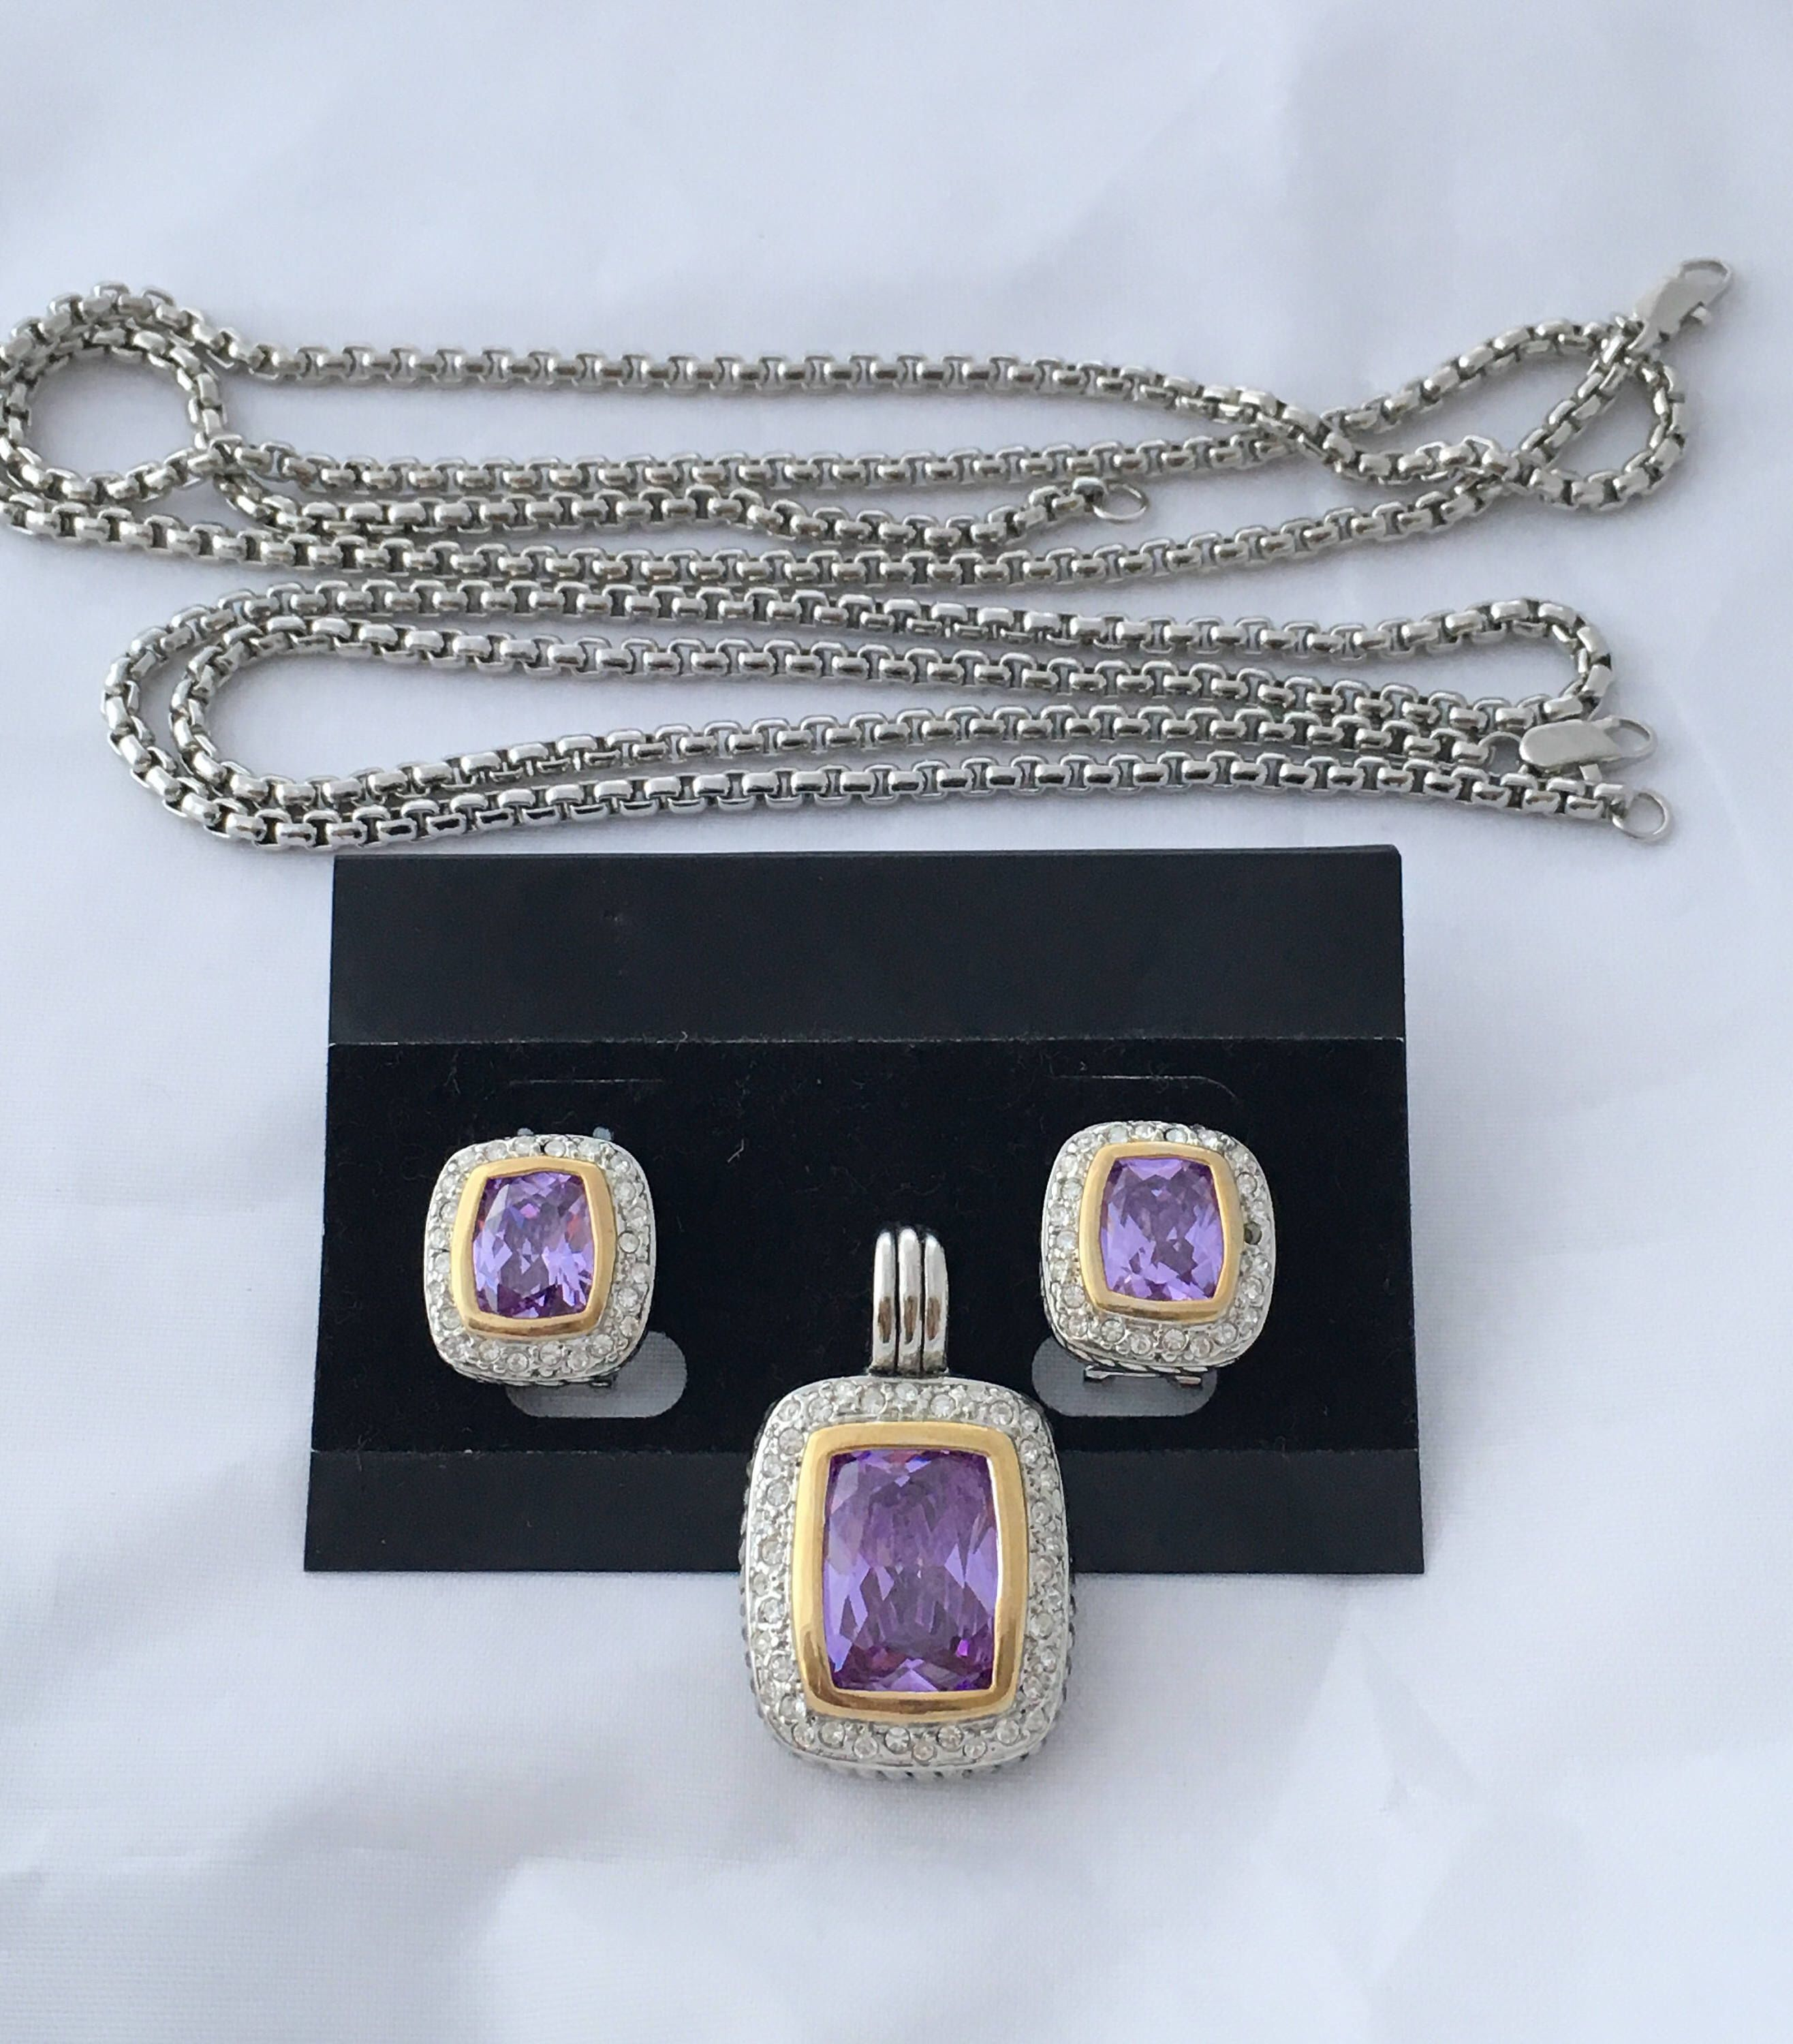 42c3ecf88 Elegant Faceted Faux Central Topaz Rhinestones Set With Two Silver ...